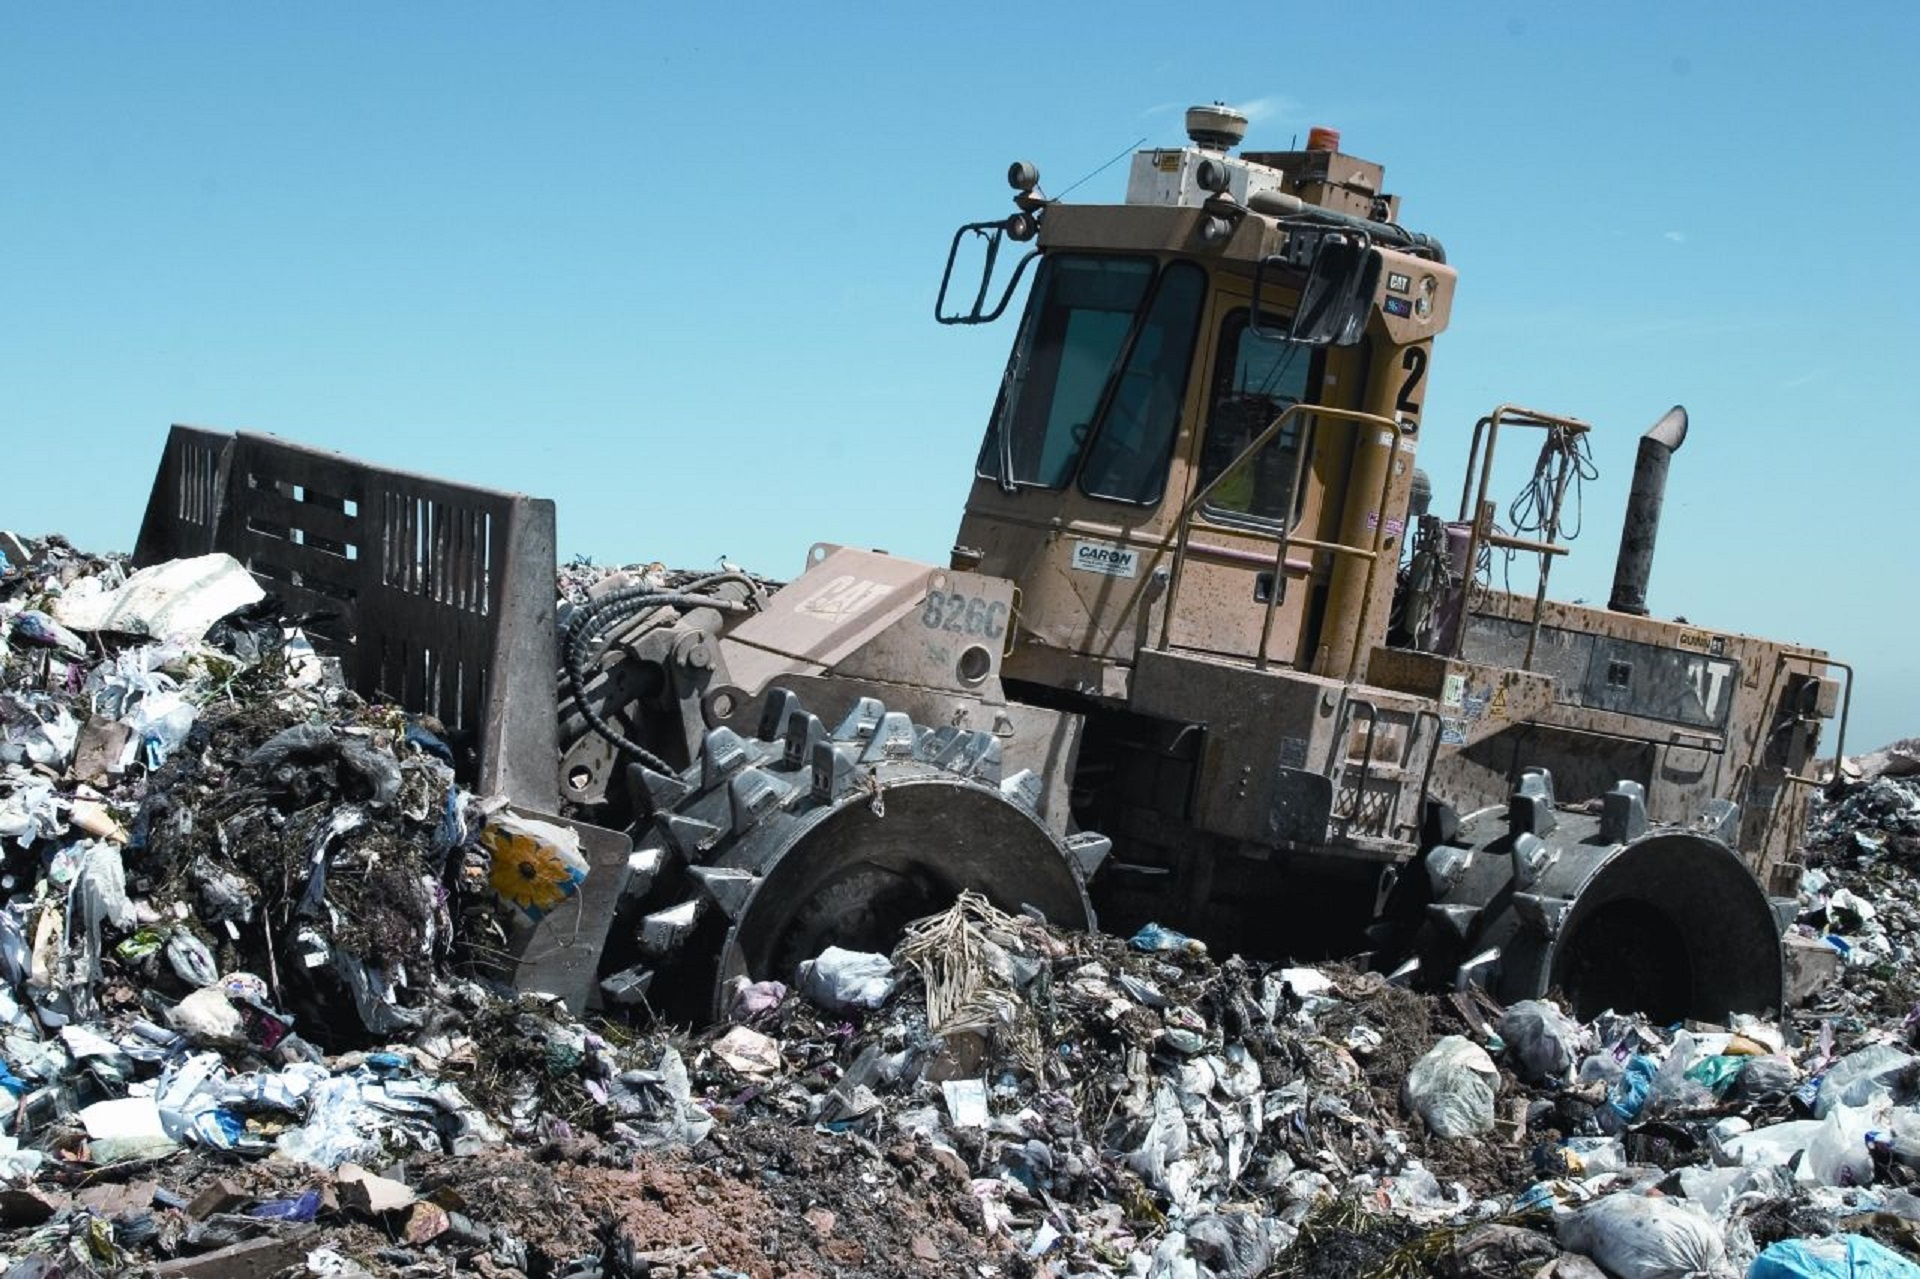 The conditions in landfill sites are typically not favourable for degradation. Photo: Pixabay